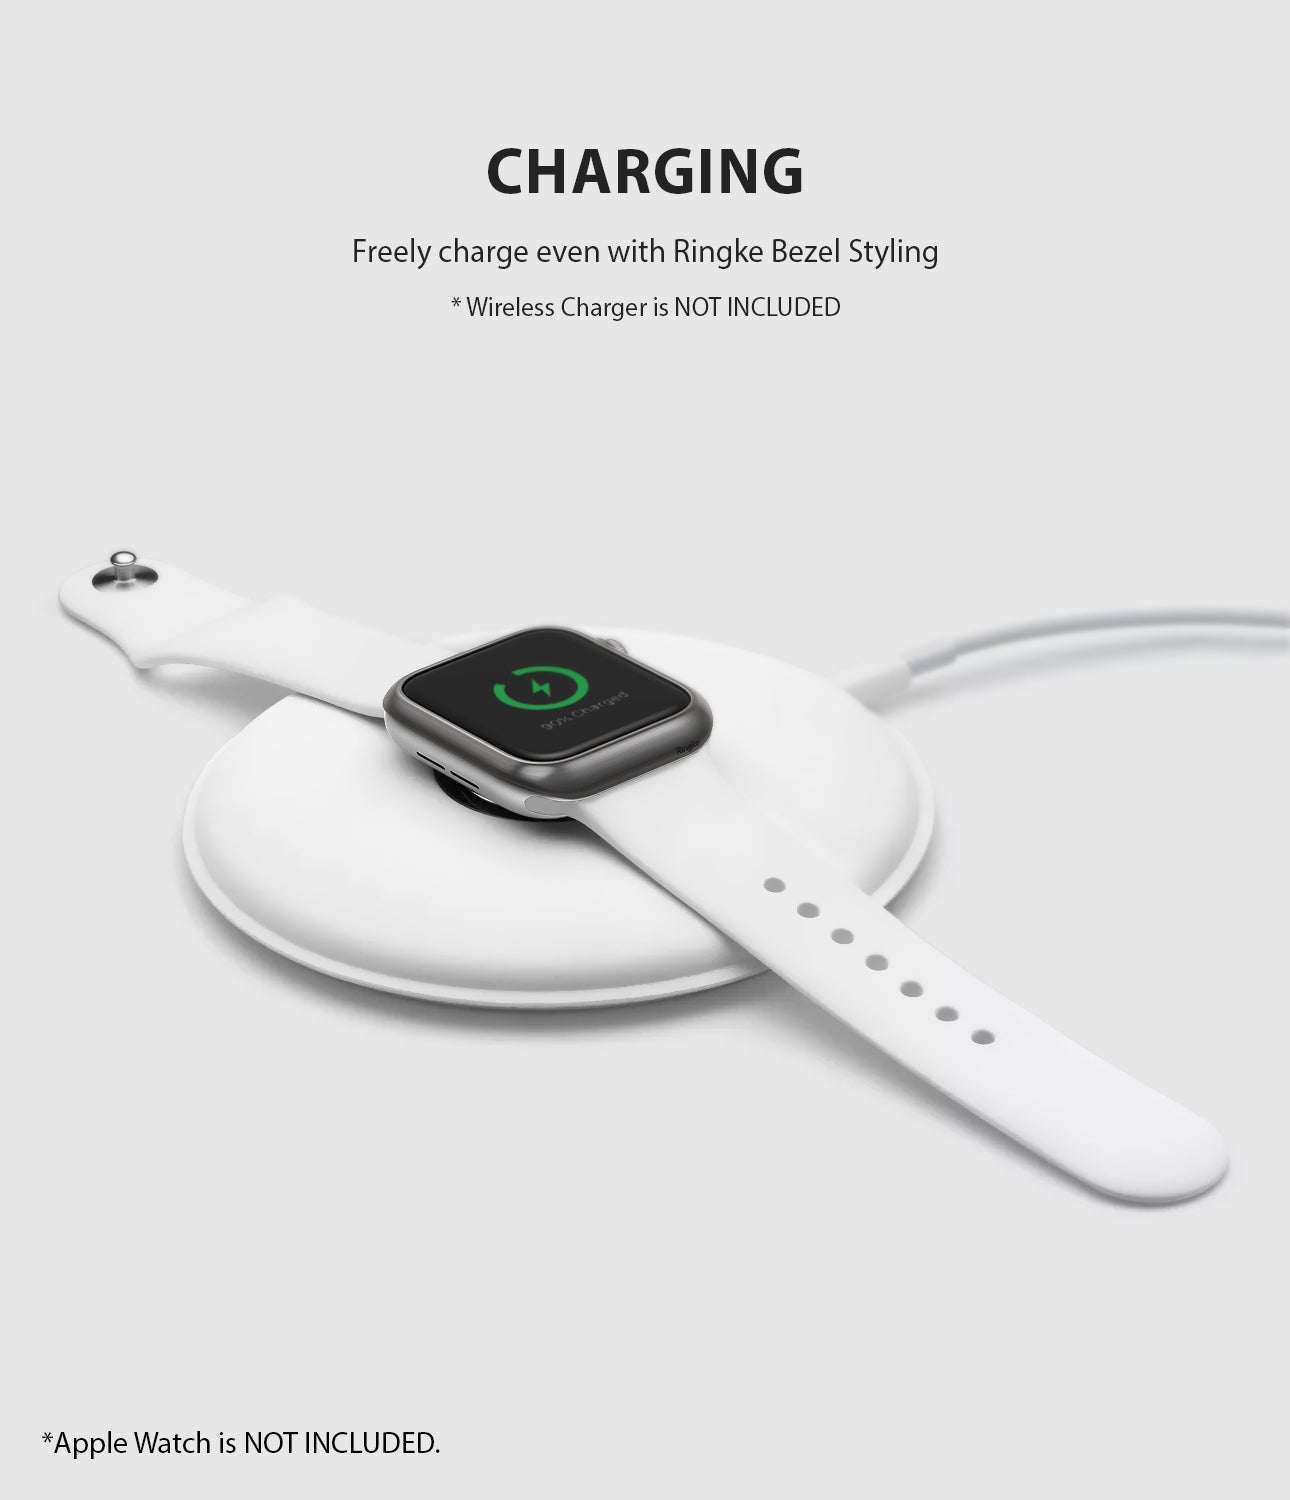 apple watch 3 2 1 42mm case ringke bezel styling stainless steel frame cover 42-06 wireless charging